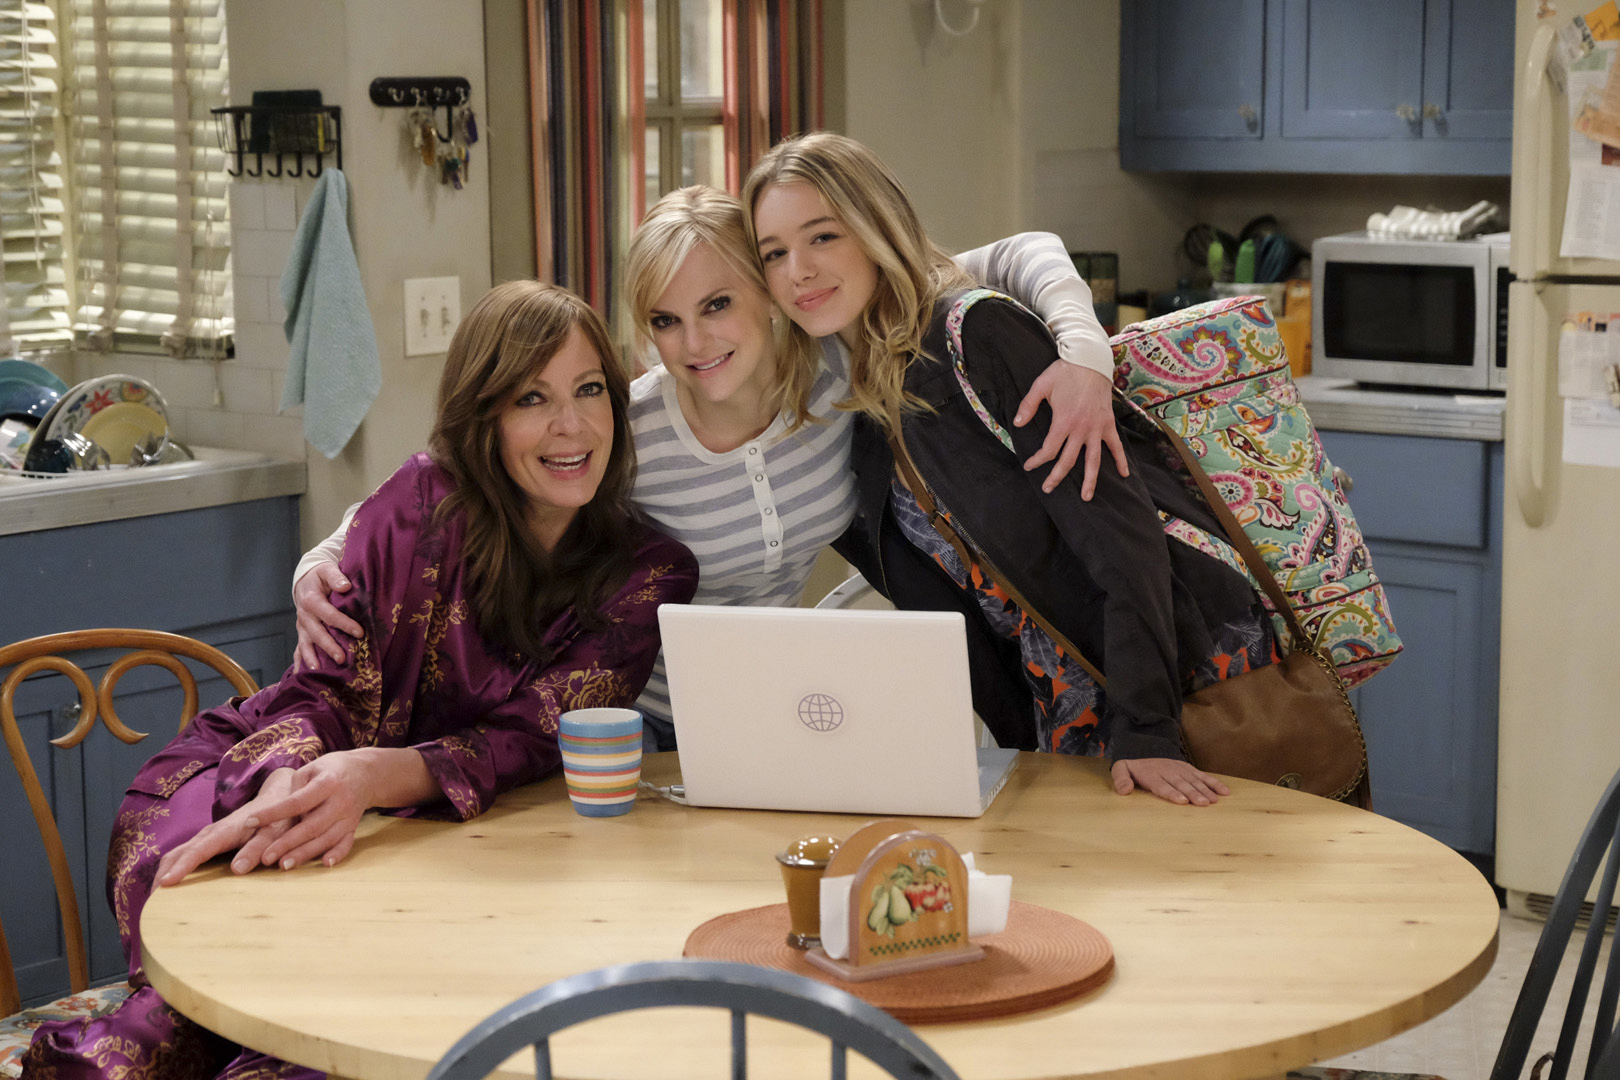 Allison Janney, Anna Faris, and Sadie Calvano take a break between scenes on Mom.